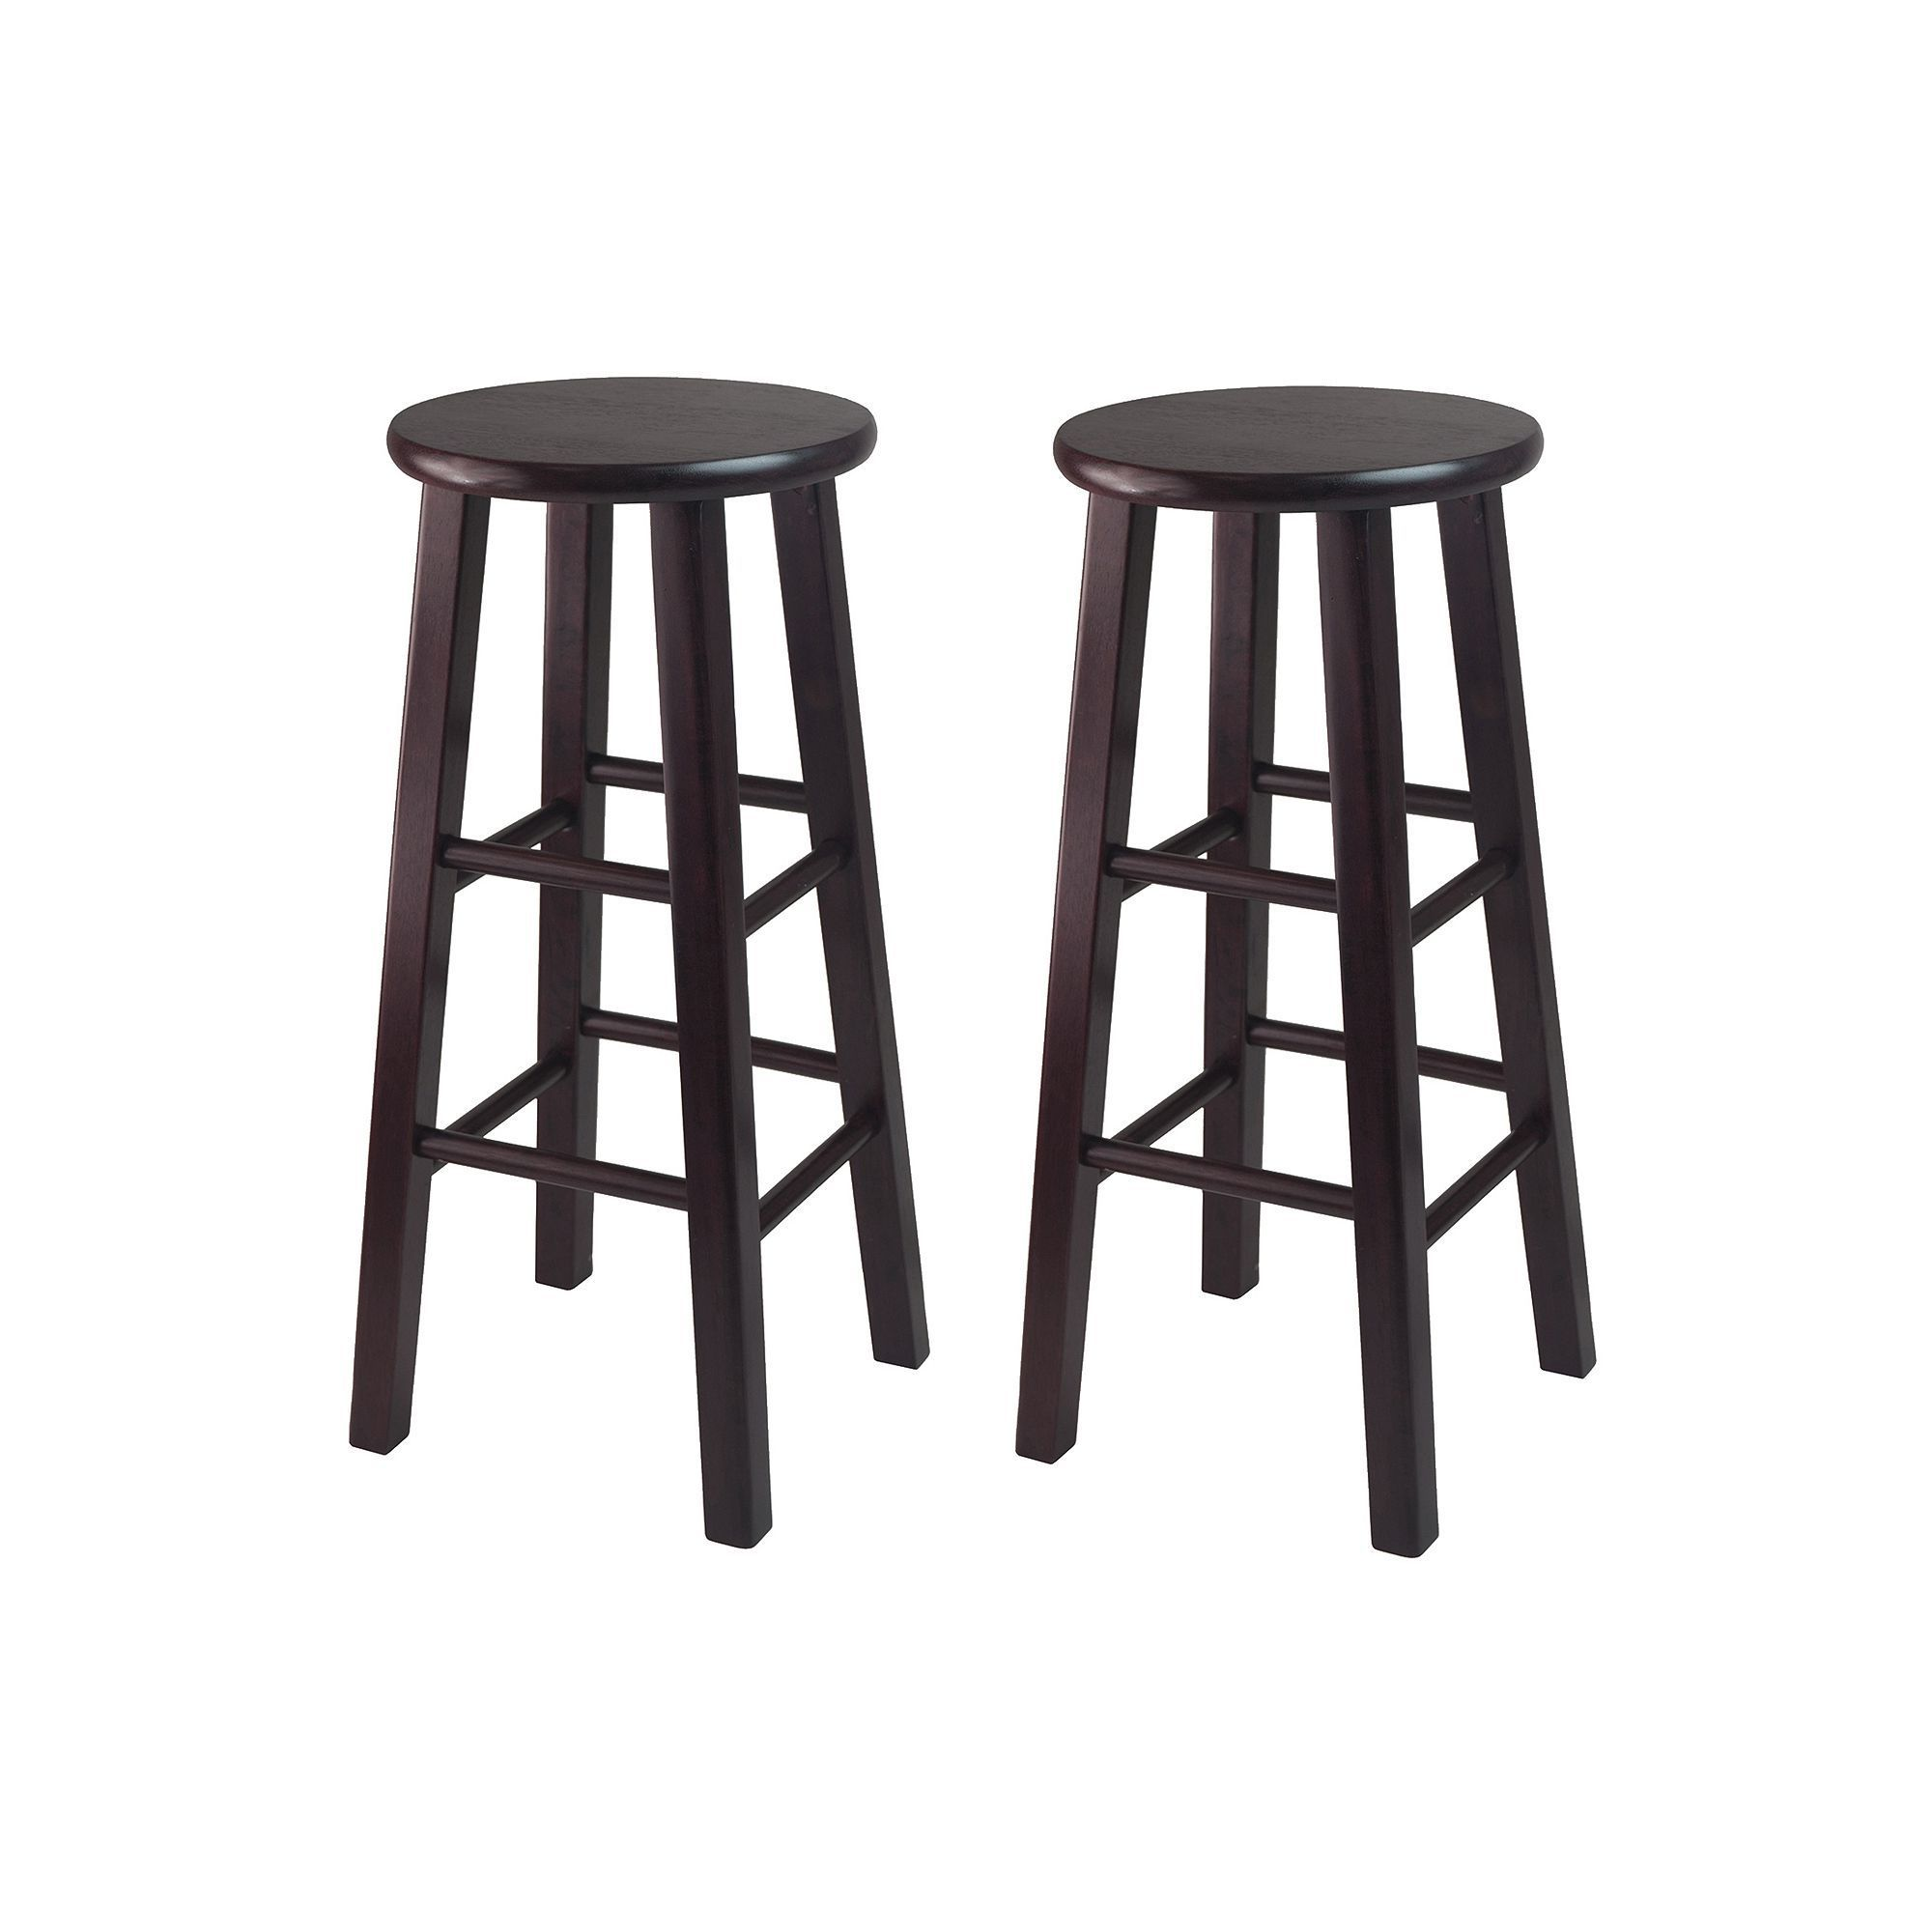 Winsome 2 Pc Espresso Bar Stool Set Wood Bar Stools Bar Stools